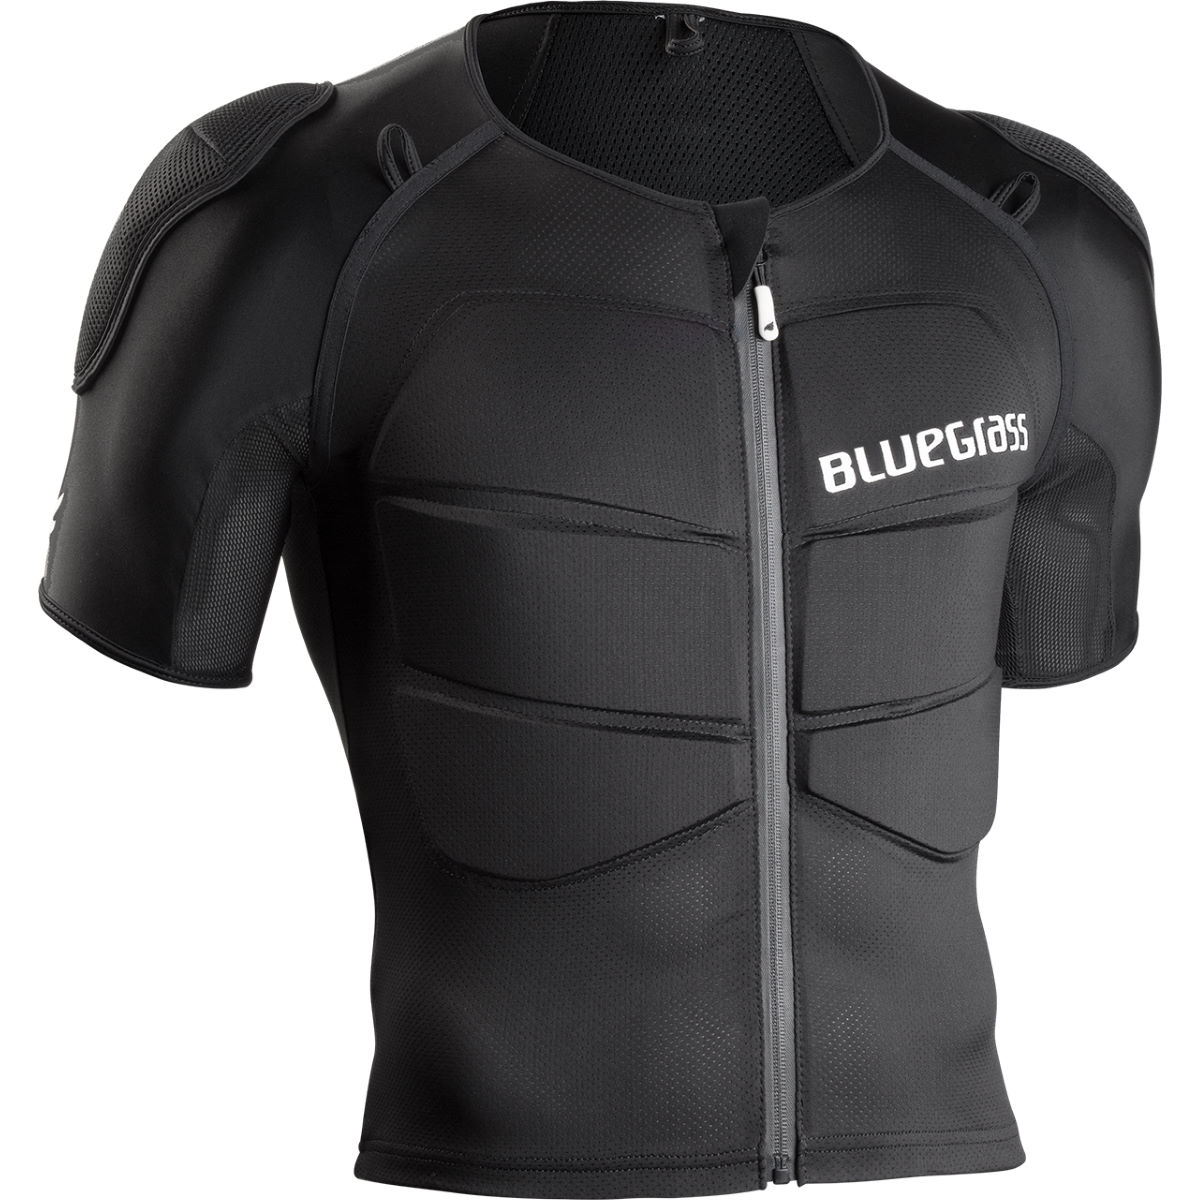 Bluegrass Armour B&S D3O - Petos y protectores corporales